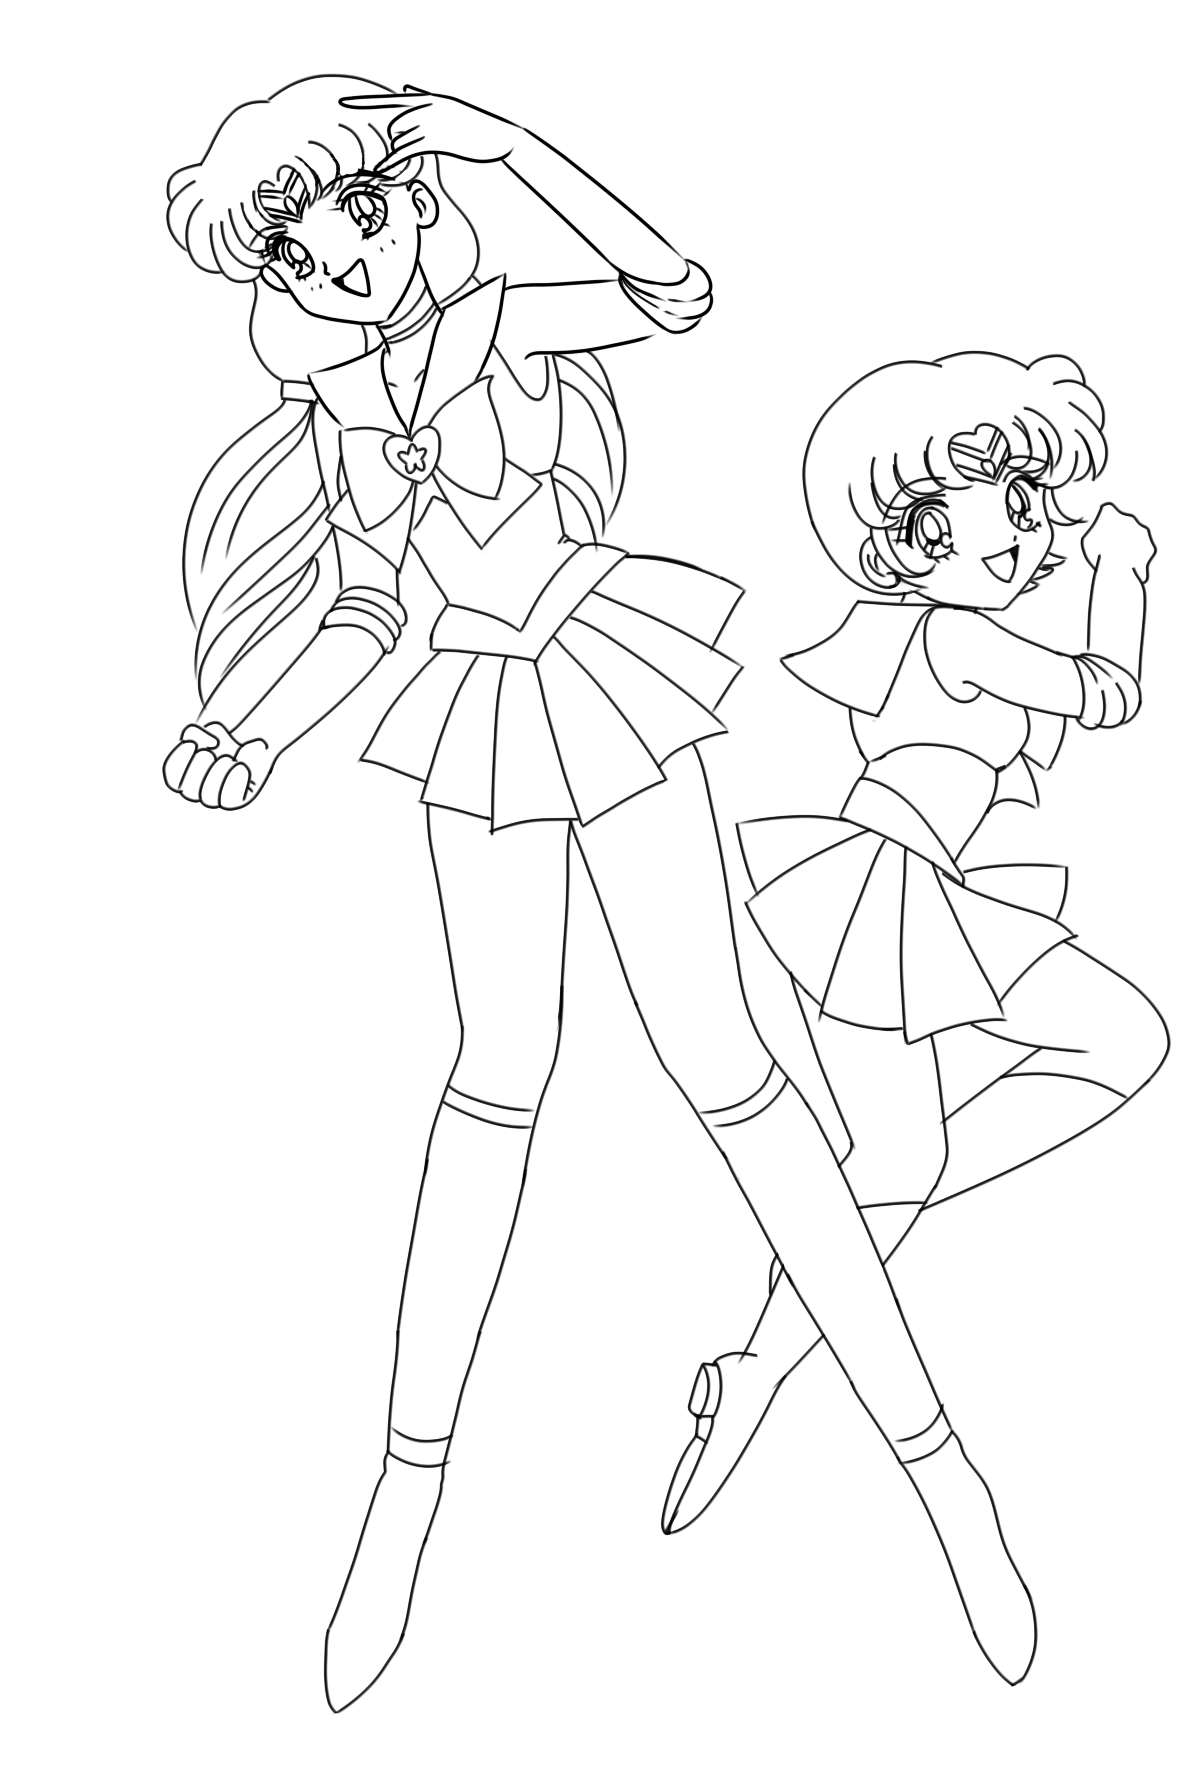 Bssmz gemini and cancer inked by wildnature03 on deviantart for Gemini coloring pages